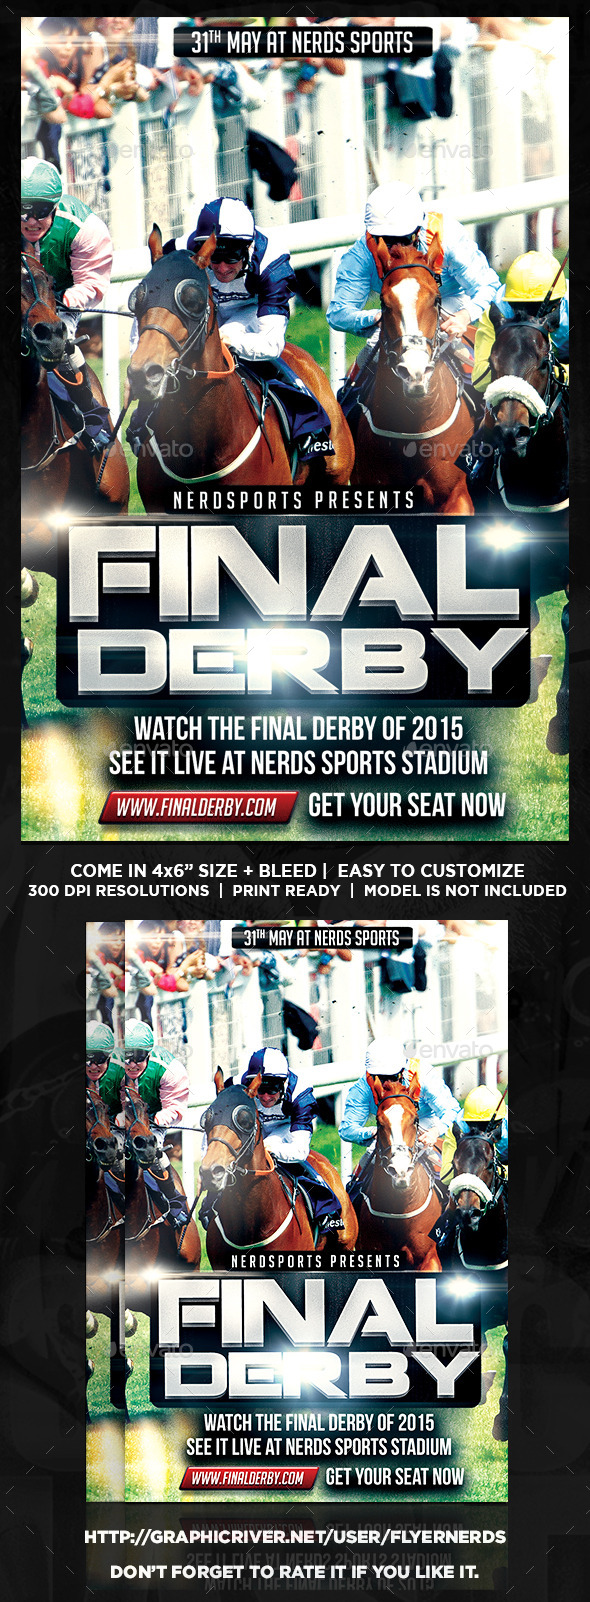 GraphicRiver Final Derby Horse Racing Championships Flyer 11010292